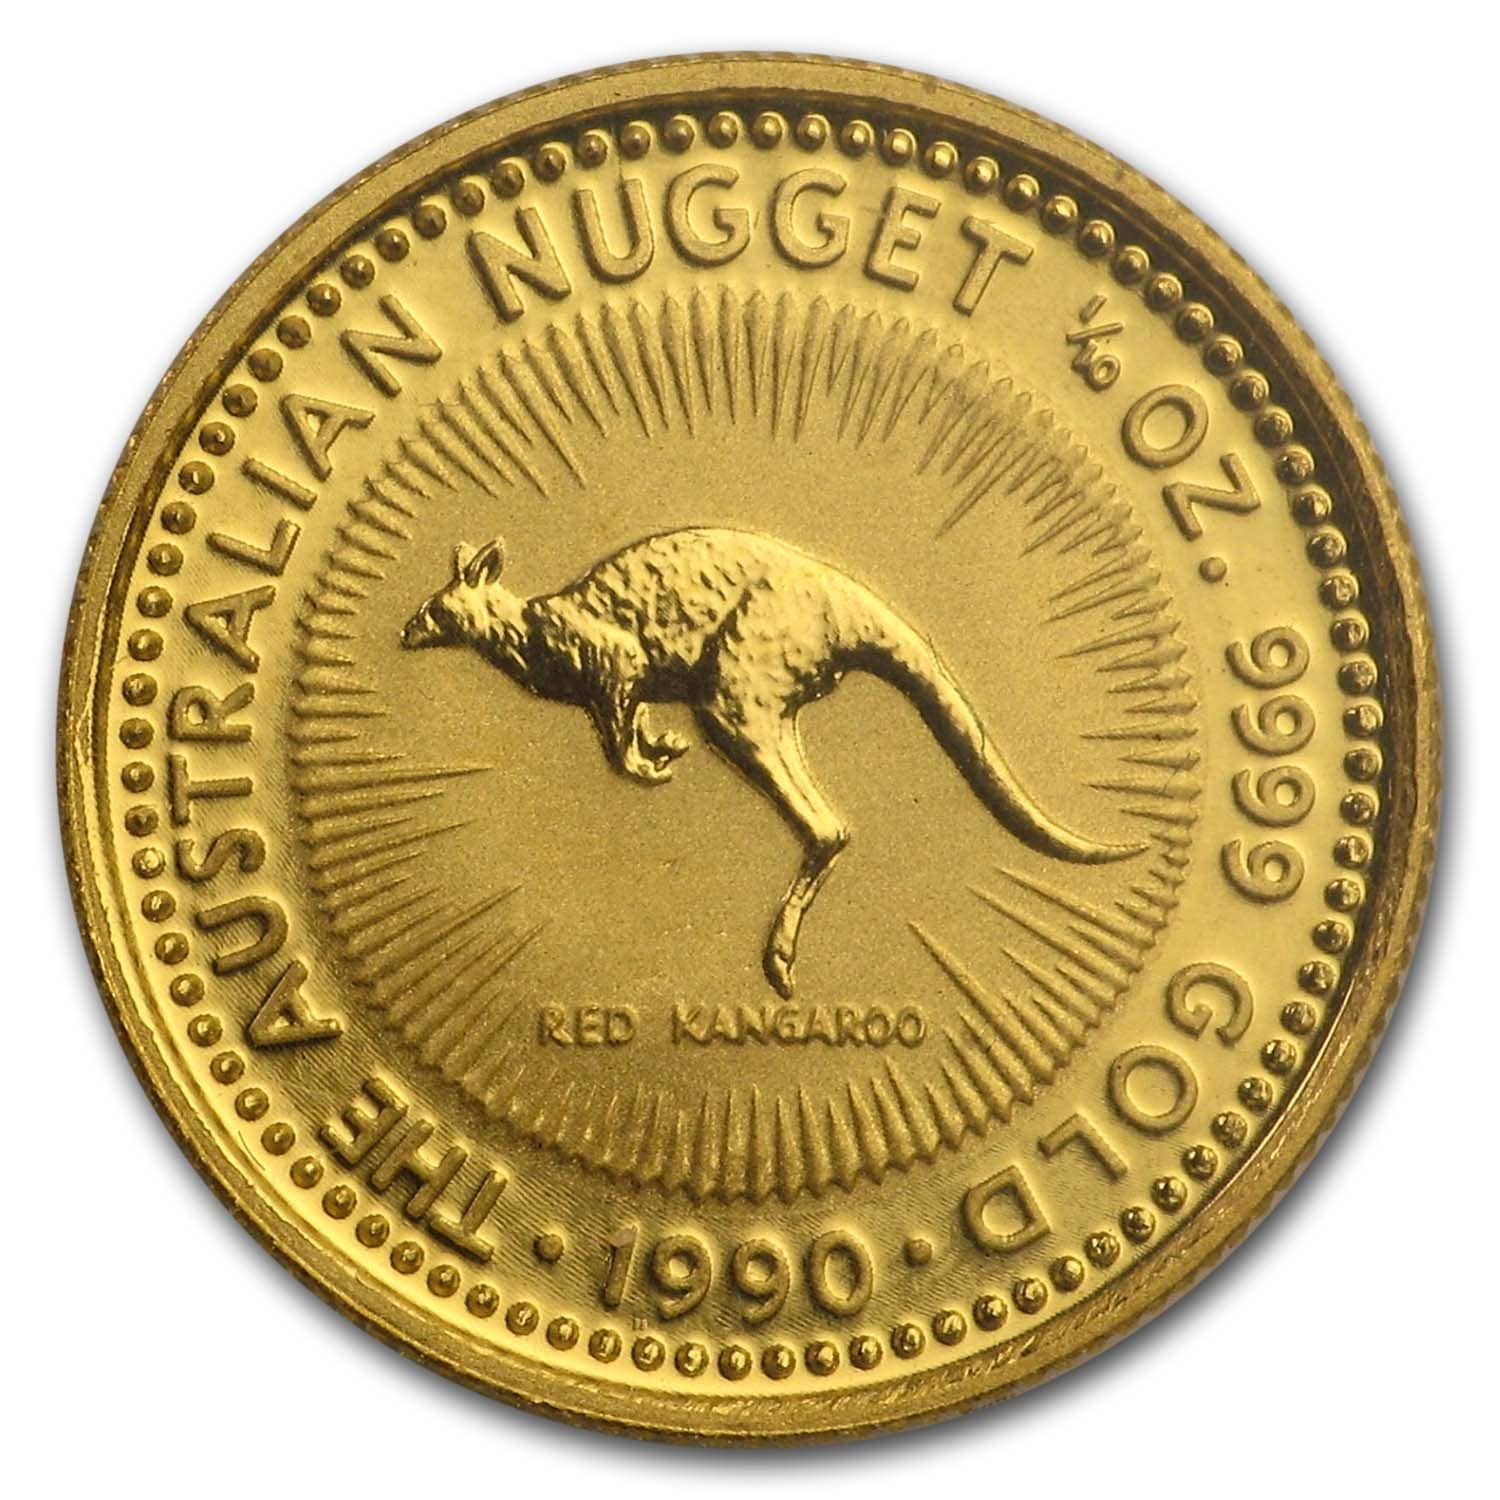 1990 Australia 1/10 oz Gold Nugget